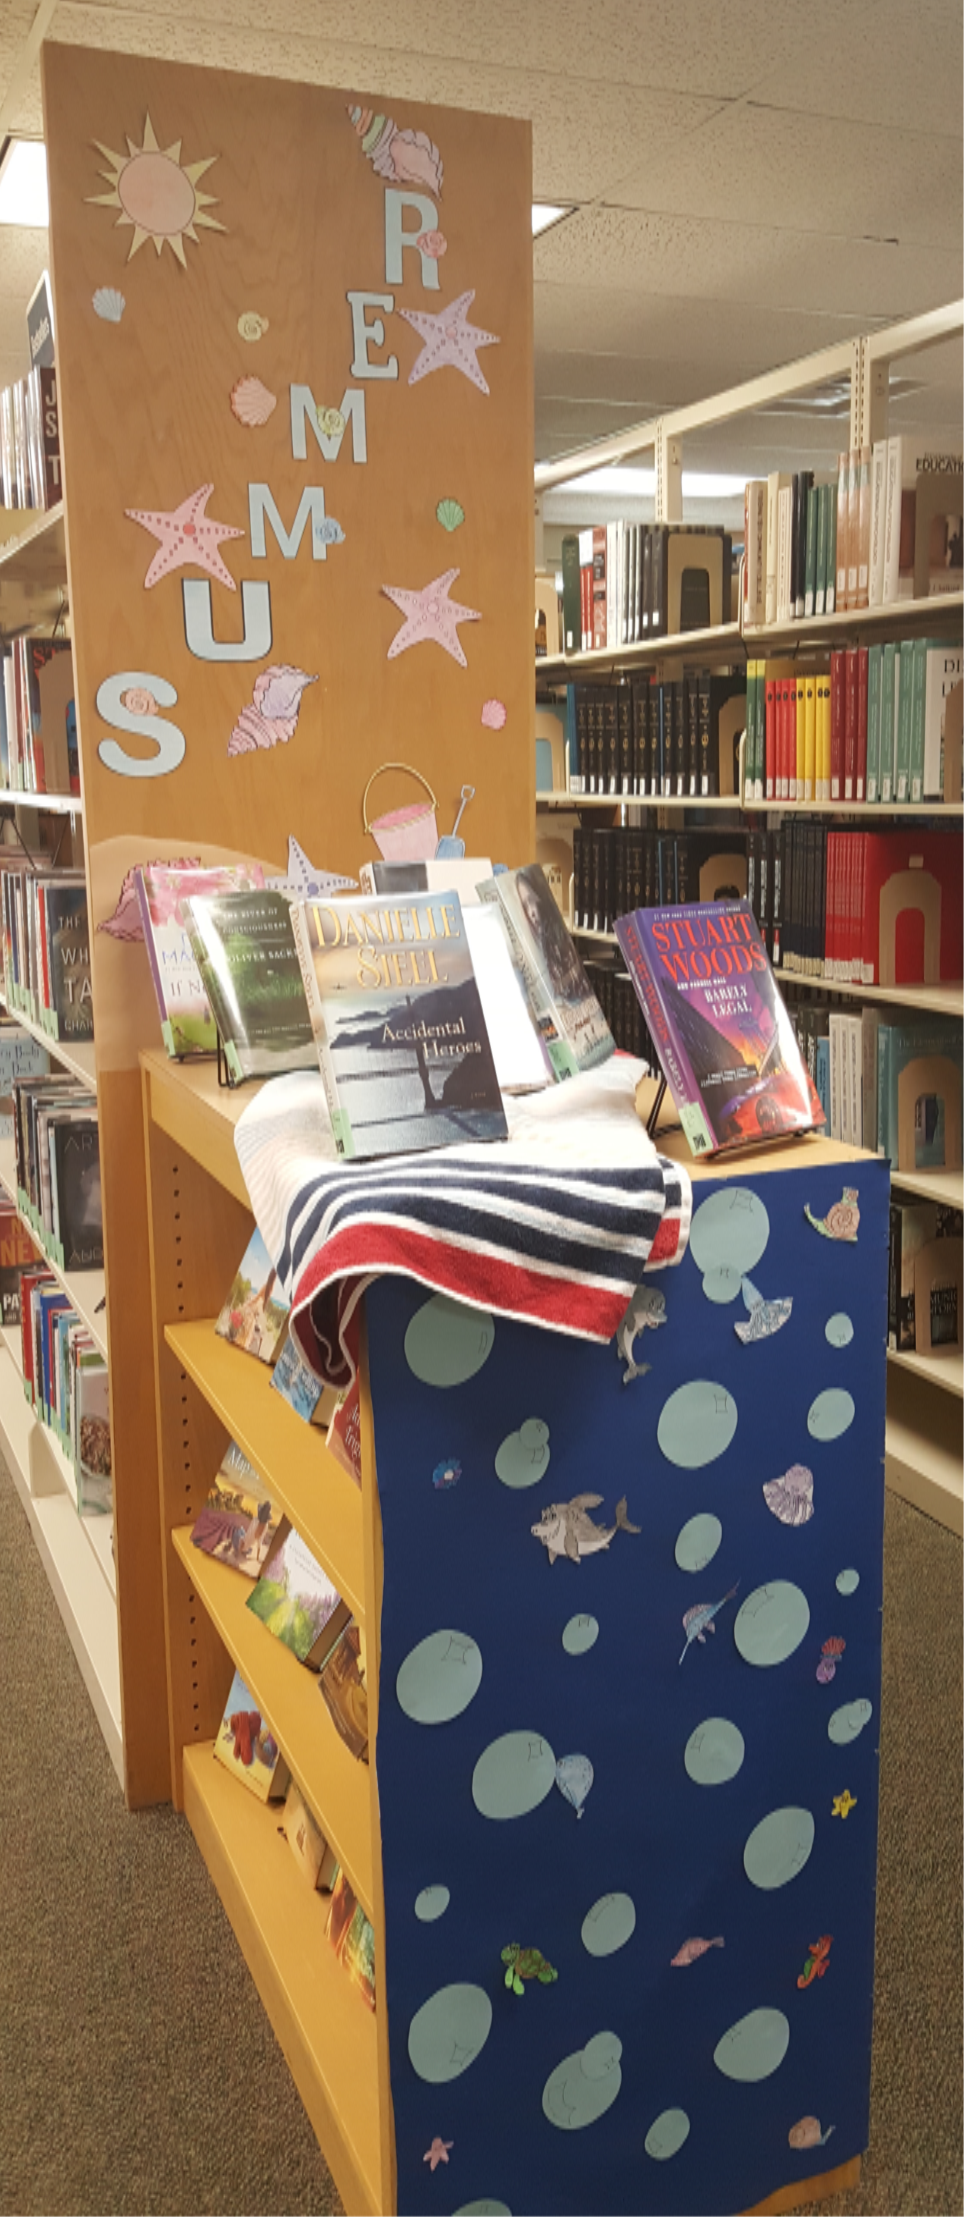 Image:  Summer 2018 Library Display